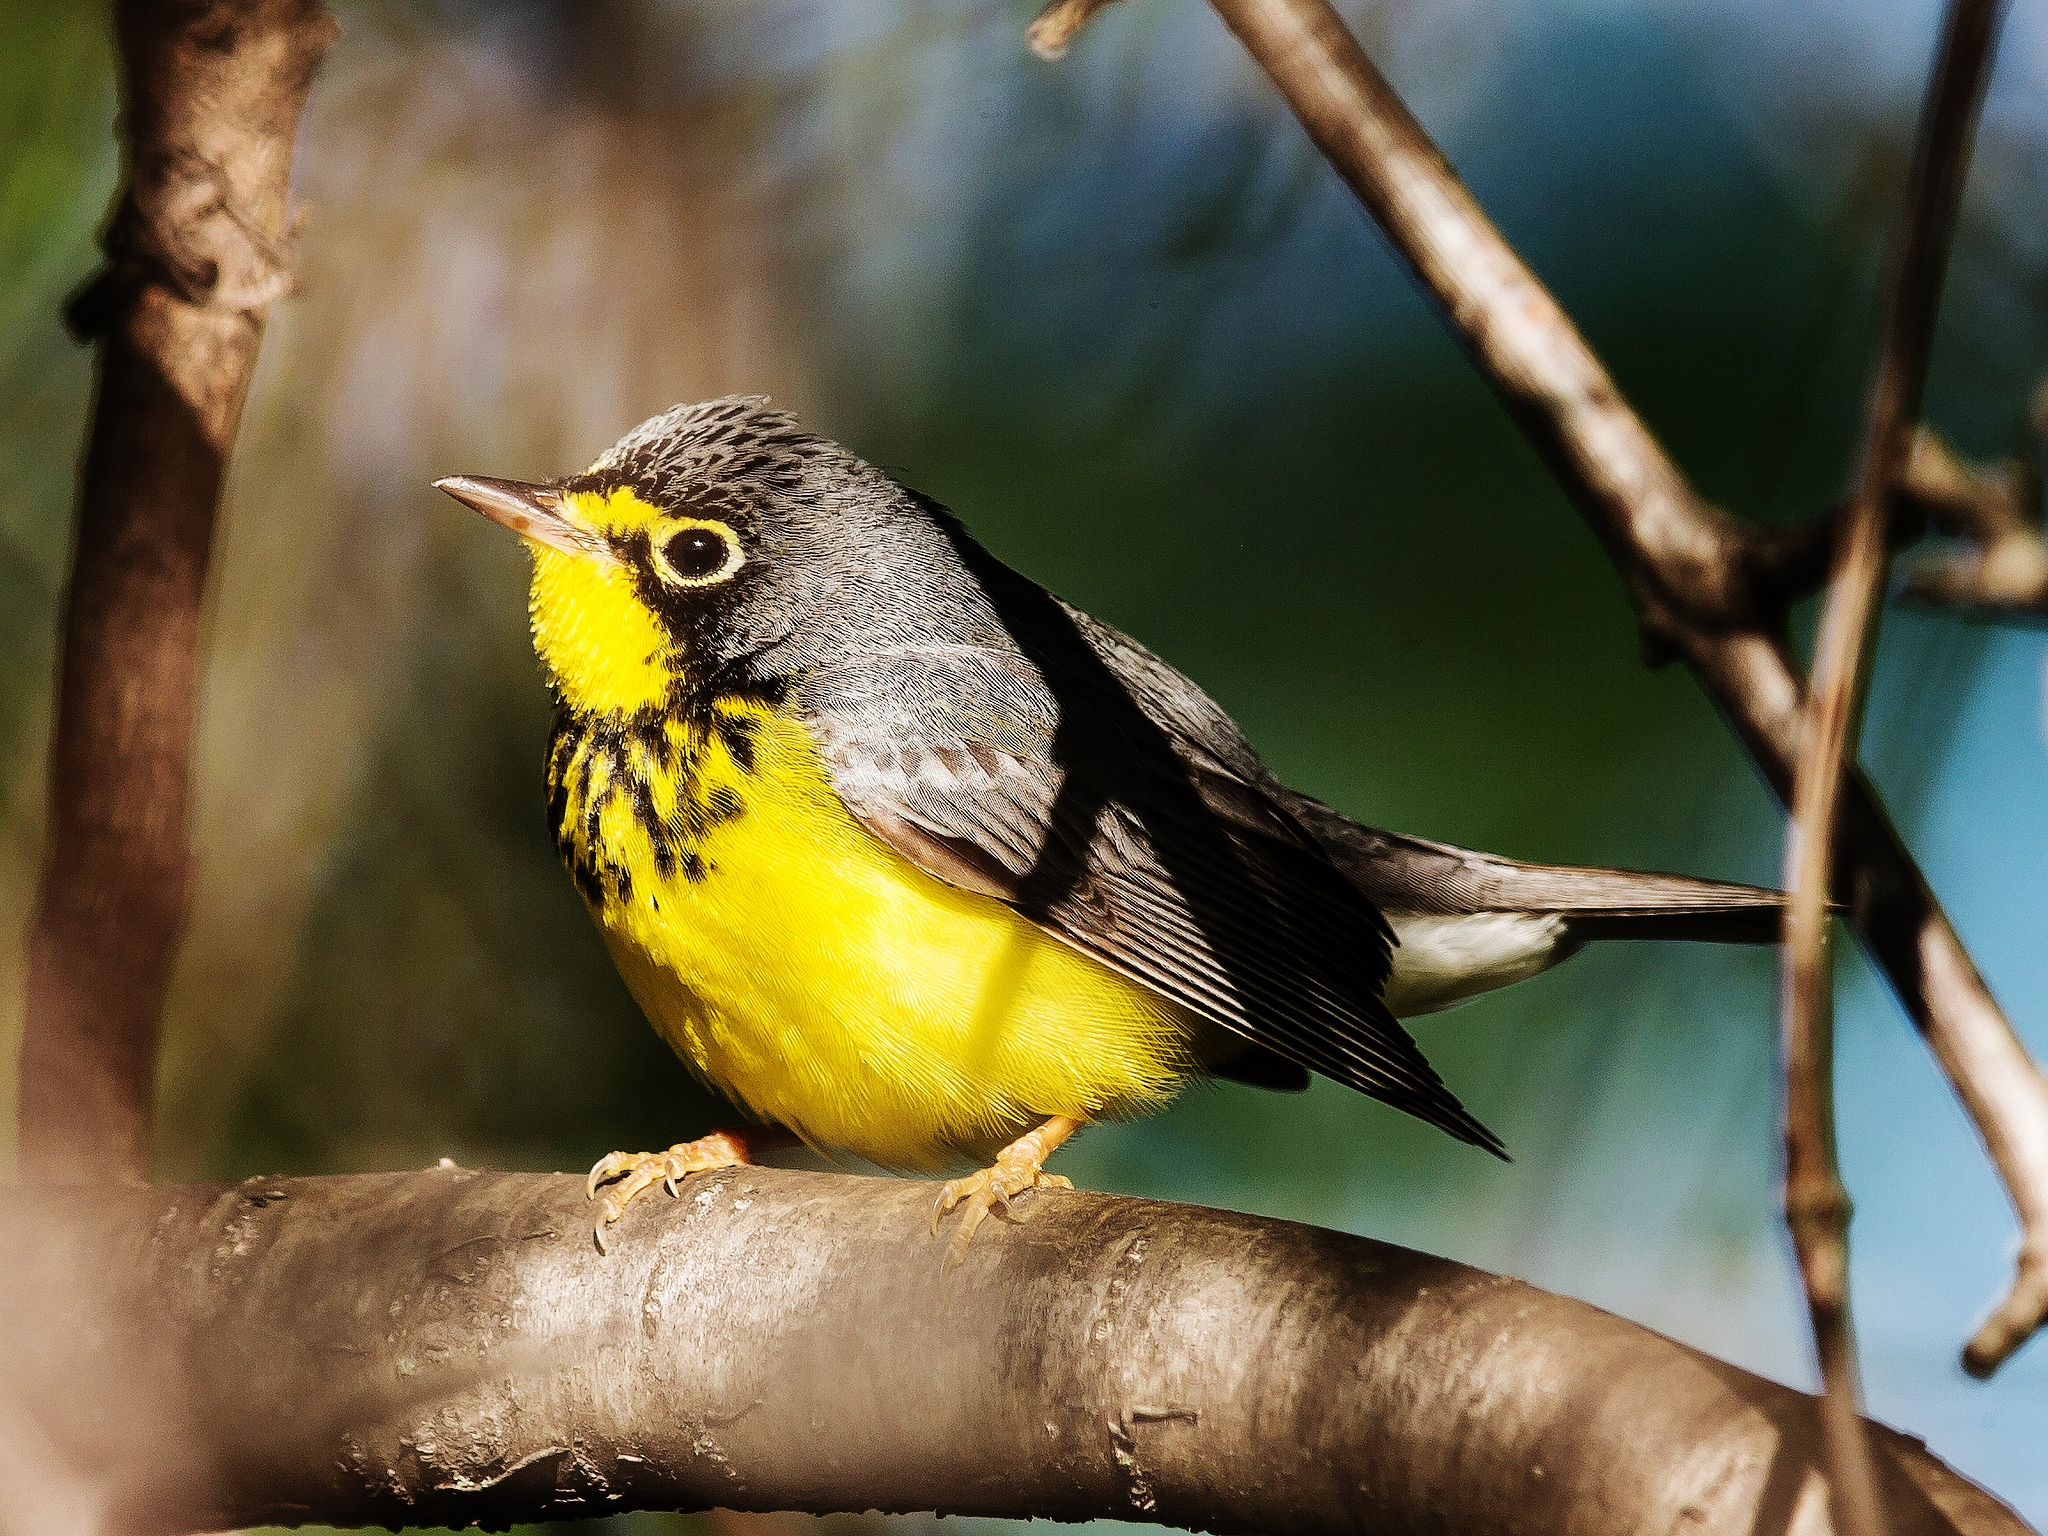 Caption: Parula warbler, Credit: John Benson on Flickr